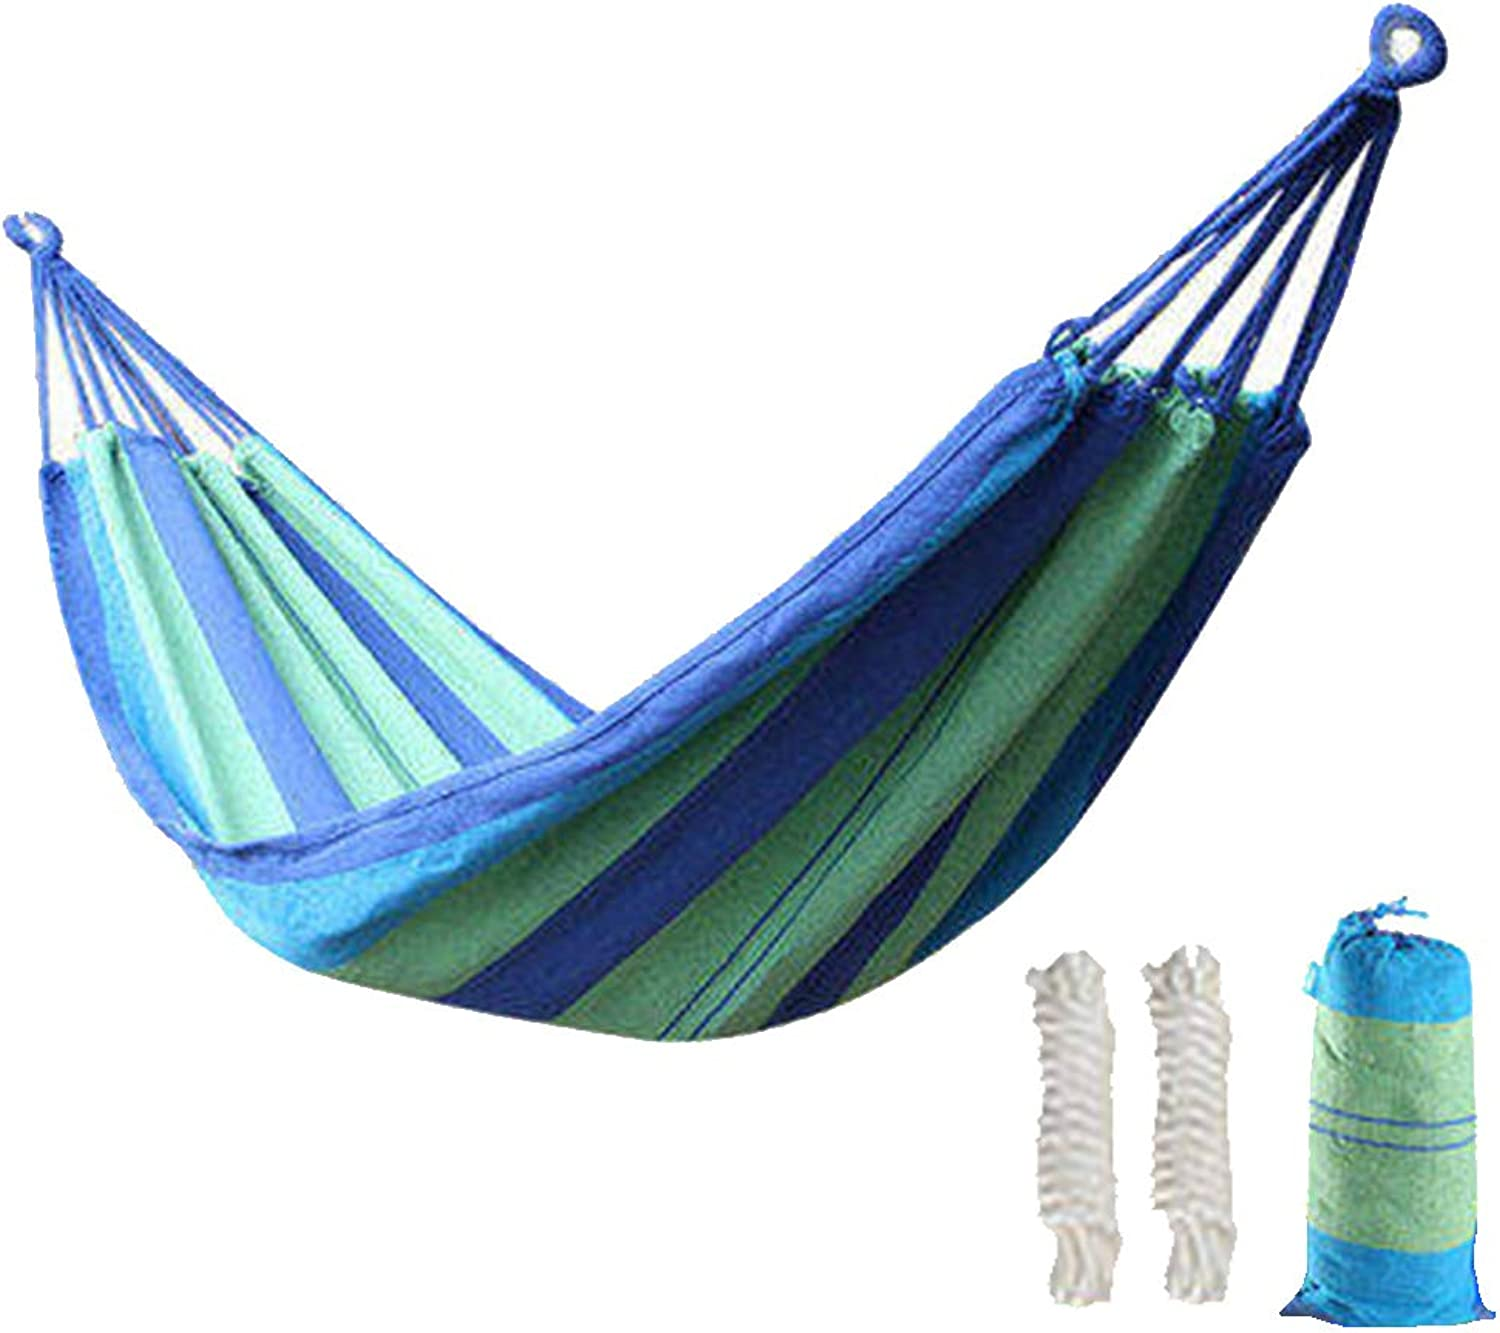 CUUYQ Double Camping Hammock, Portable Hammocks with Travel Bag Camping Travel Hammocks Includes Nylon Straps for Outdoor Indoor,blueee_200x100cm 200KG